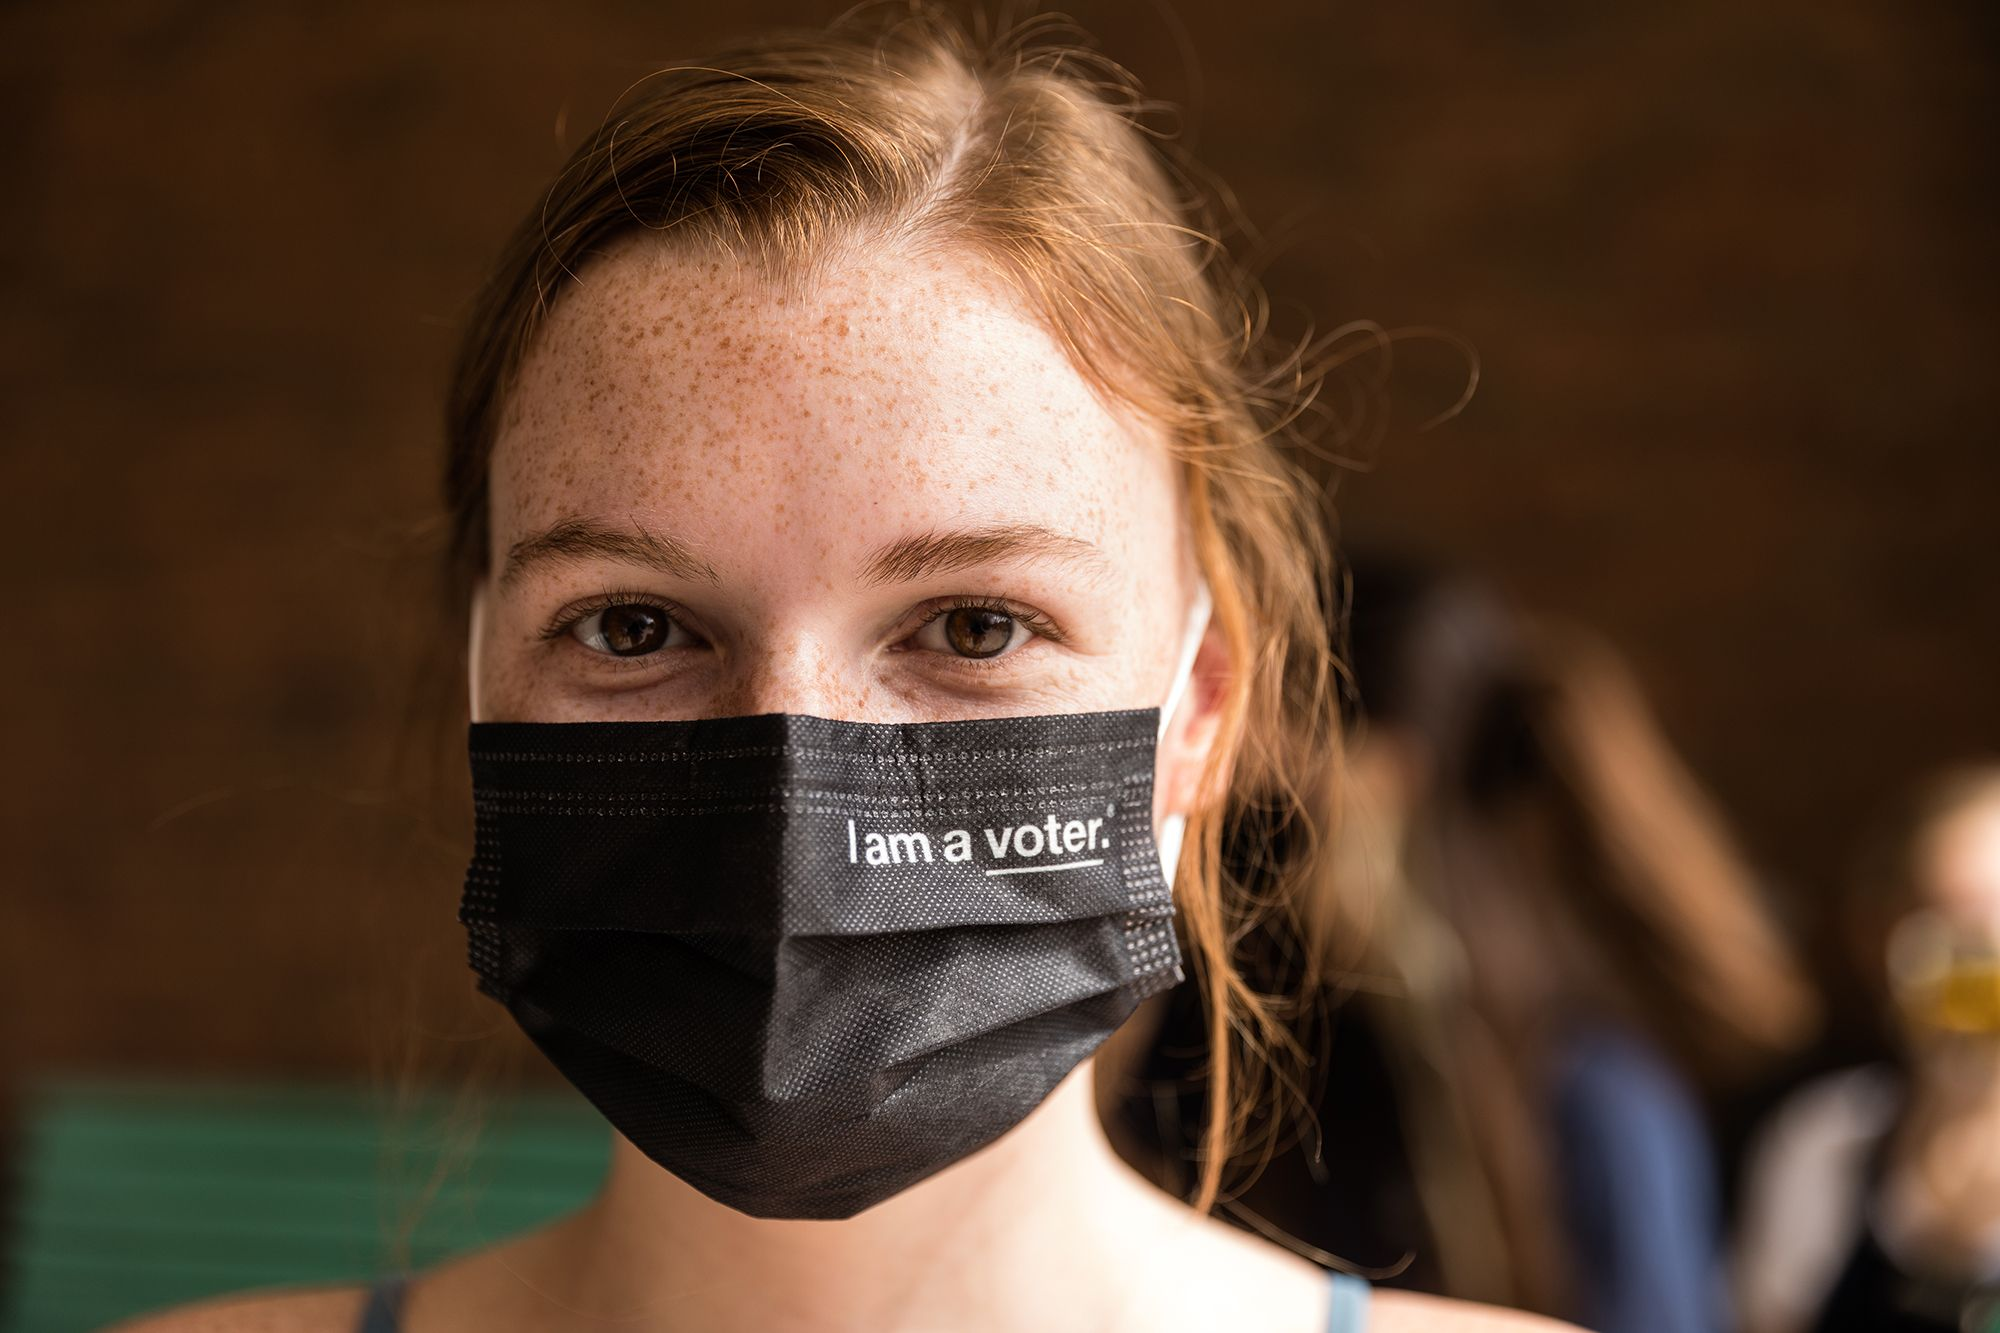 """A Rollins student wearing a black protective mask reading """"I am a voter."""""""